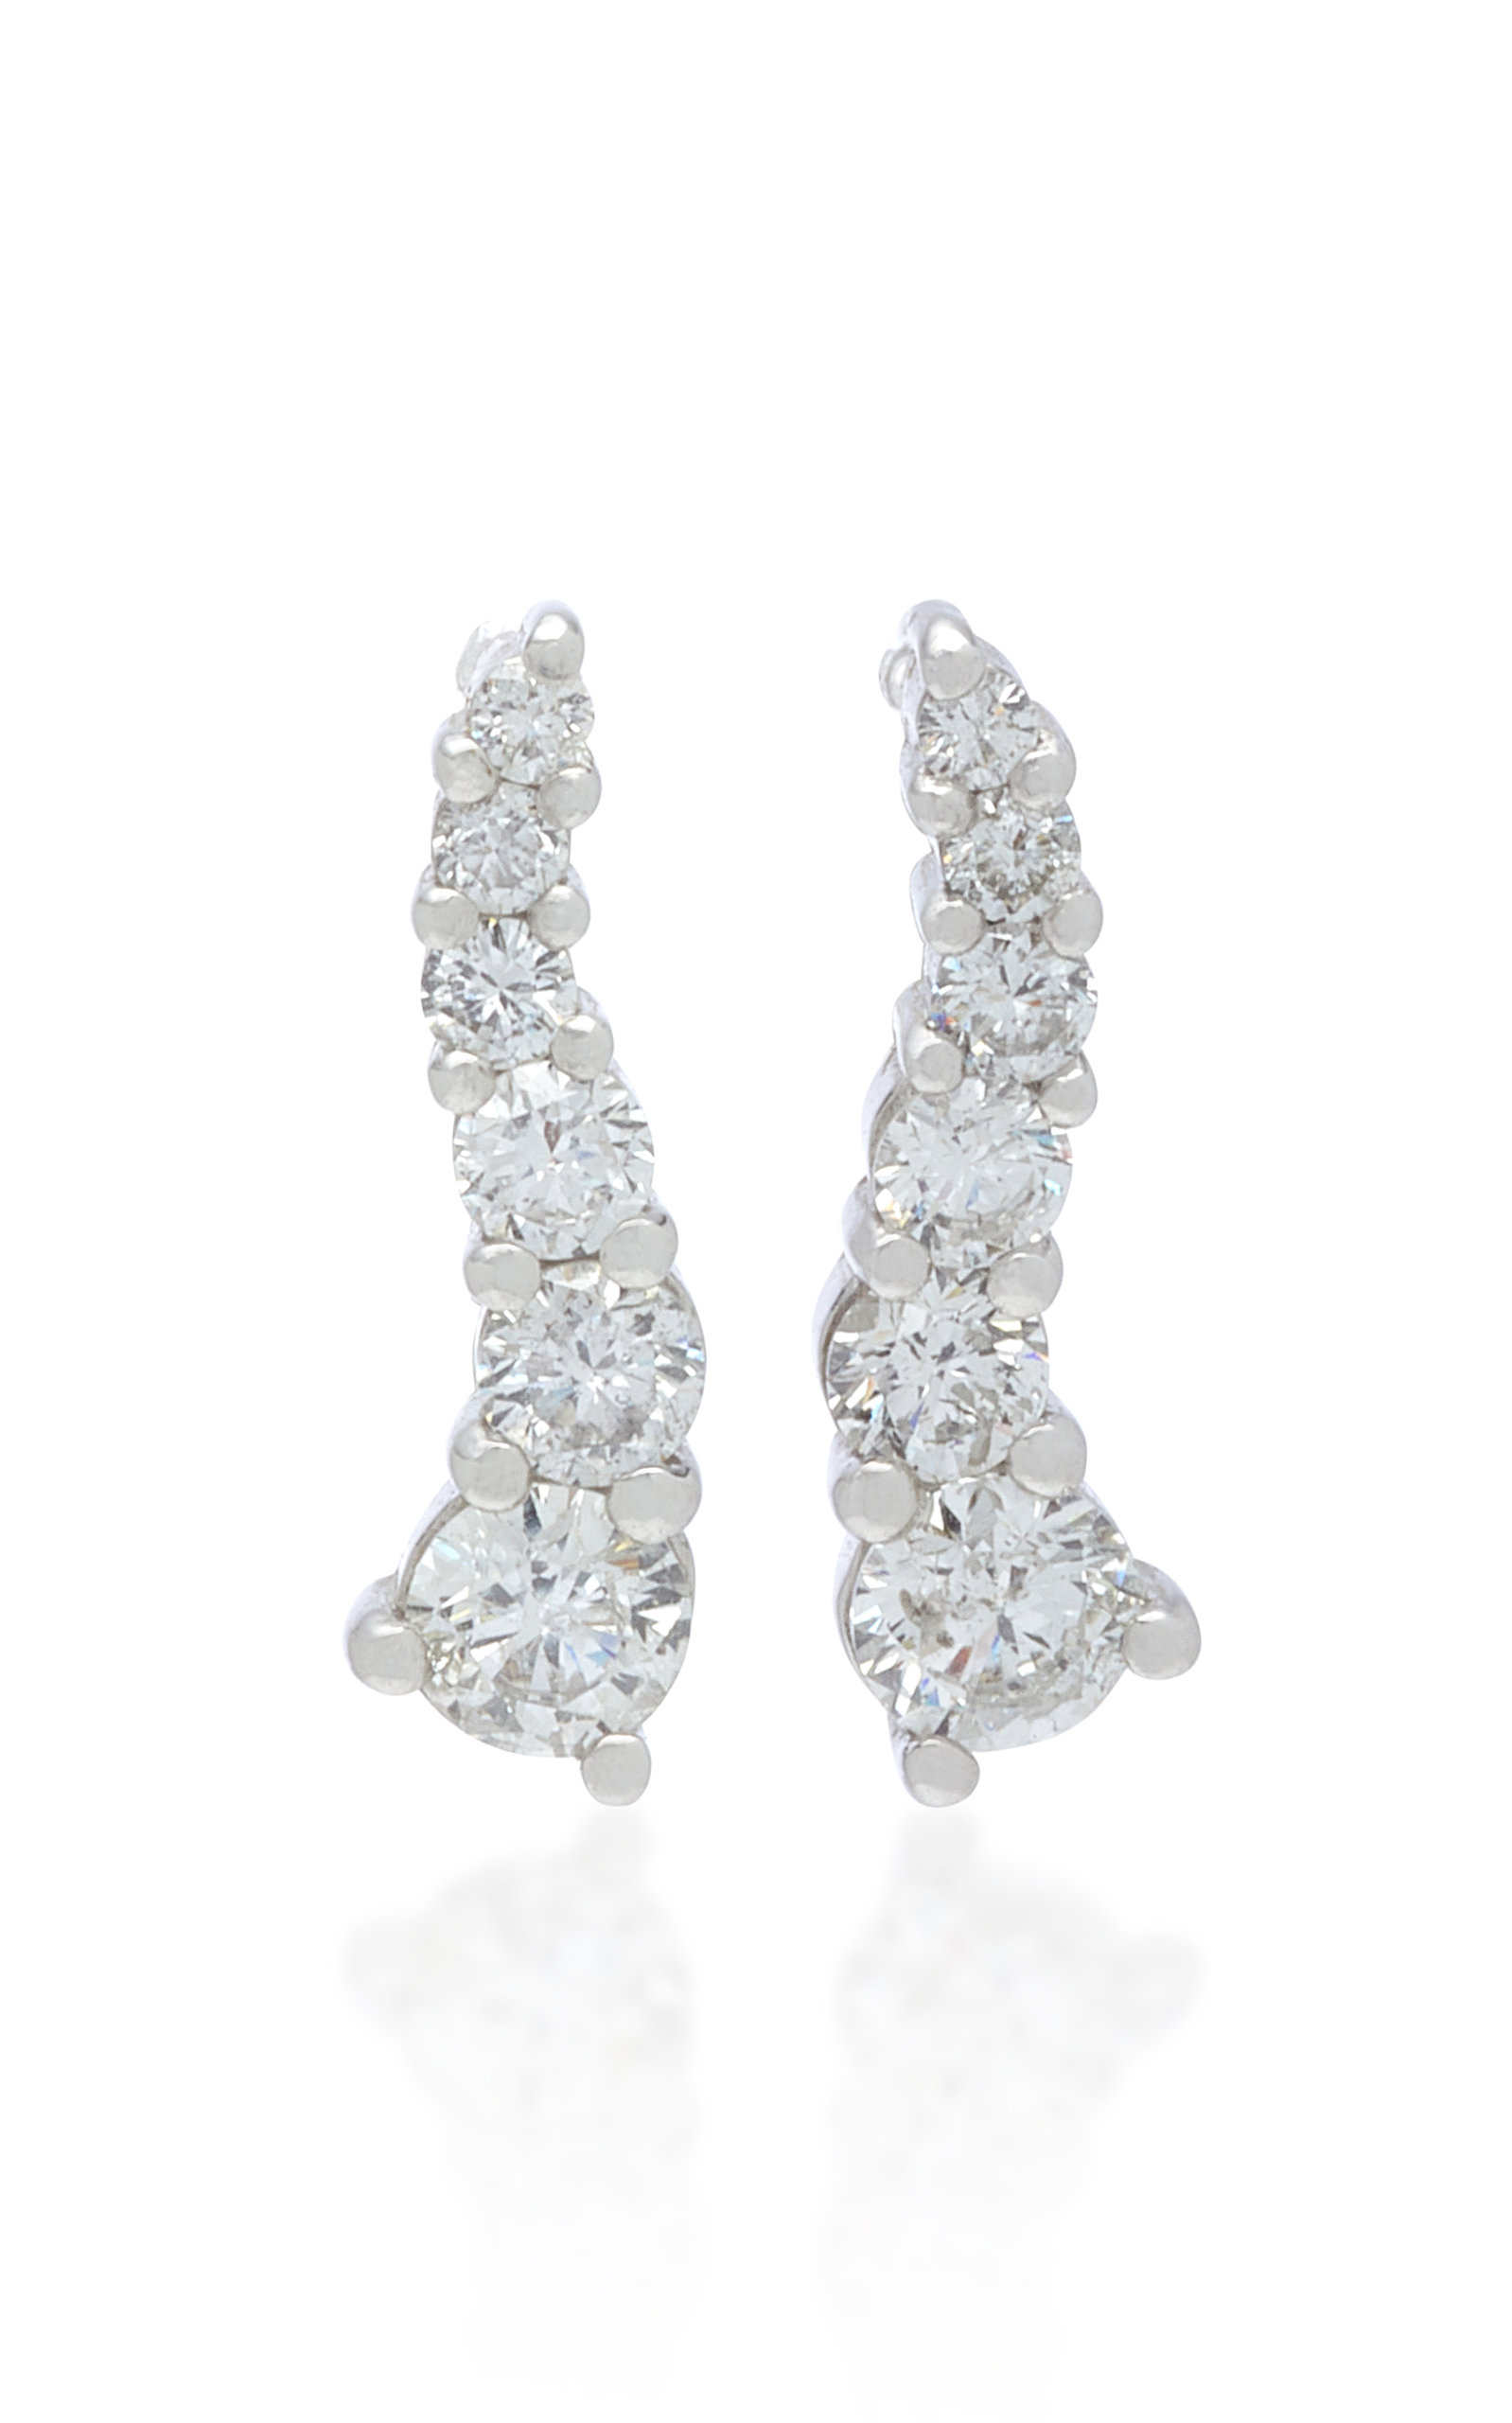 LYNN BAN JEWELRY Larvae Sterling Silver And Diamond Earrings in White